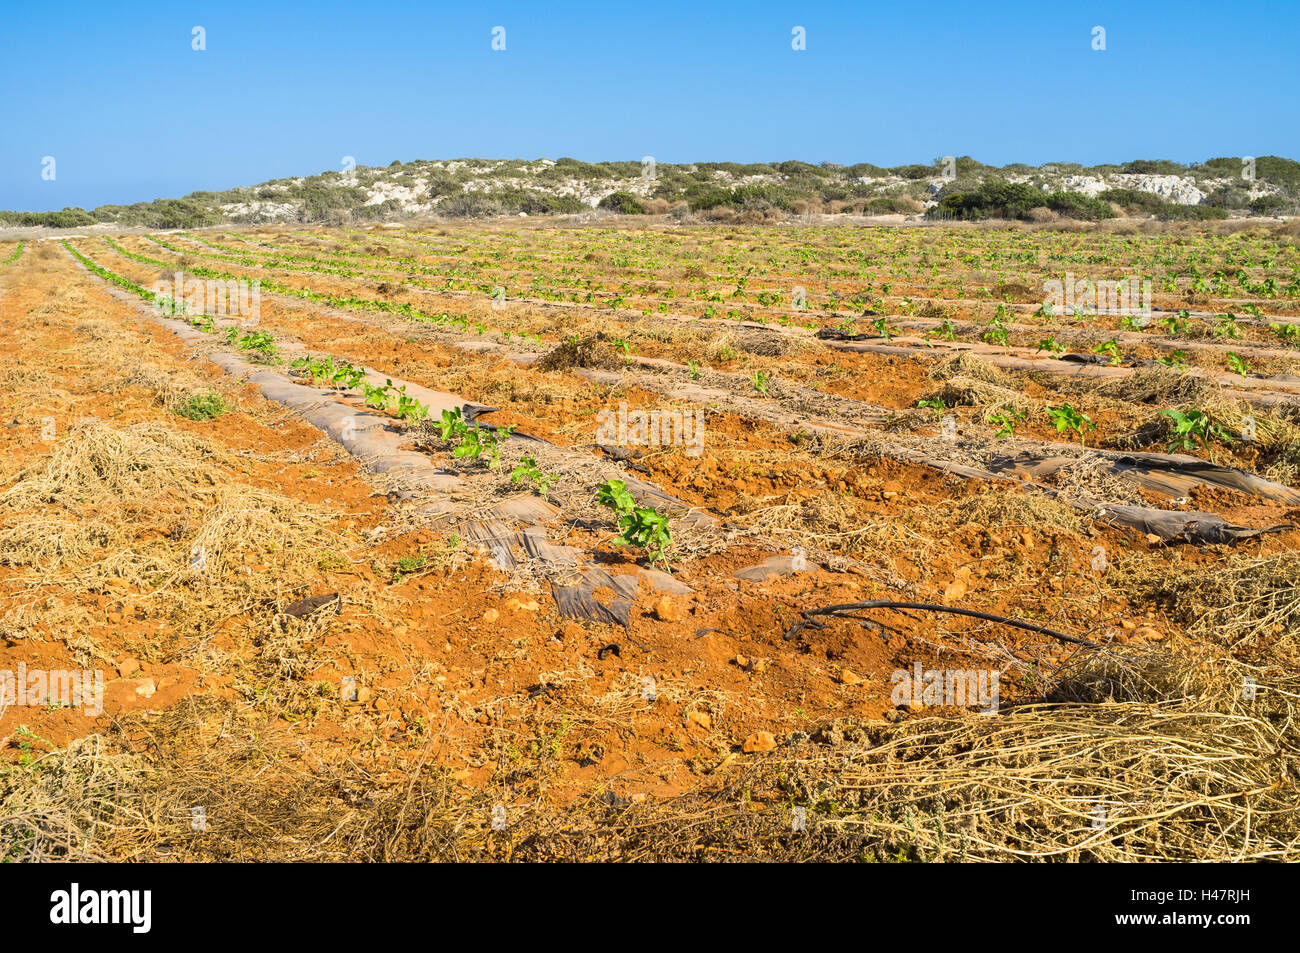 The farm lands with the young plants and irrigation system, Cape Greco, Cyprus. - Stock Image